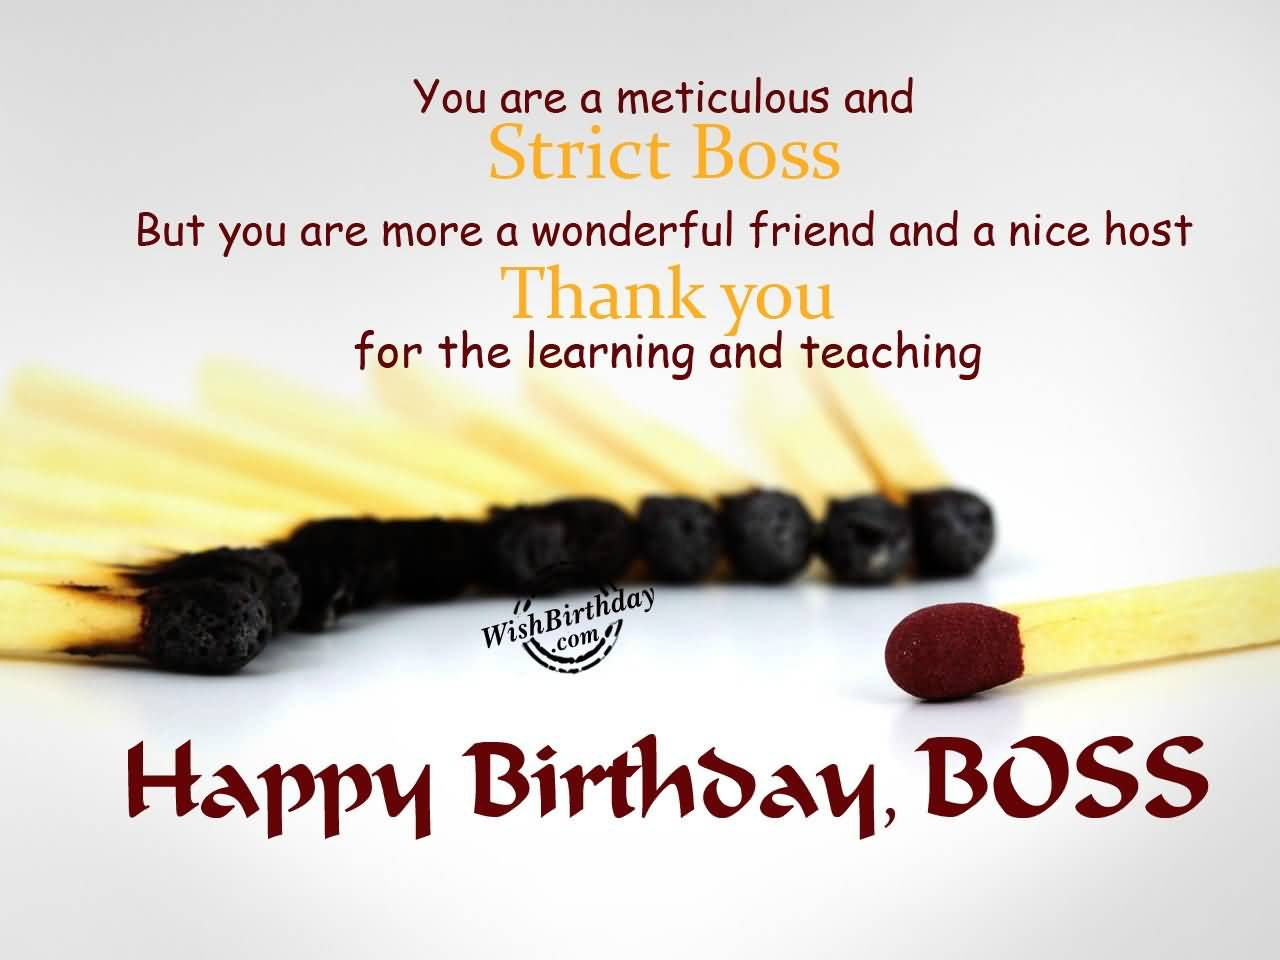 funny birthday message for boss from staff ; You-Are-A-Meticulos-And-Stric-Boss-Thanks-You-Happy-Birthday-Boss